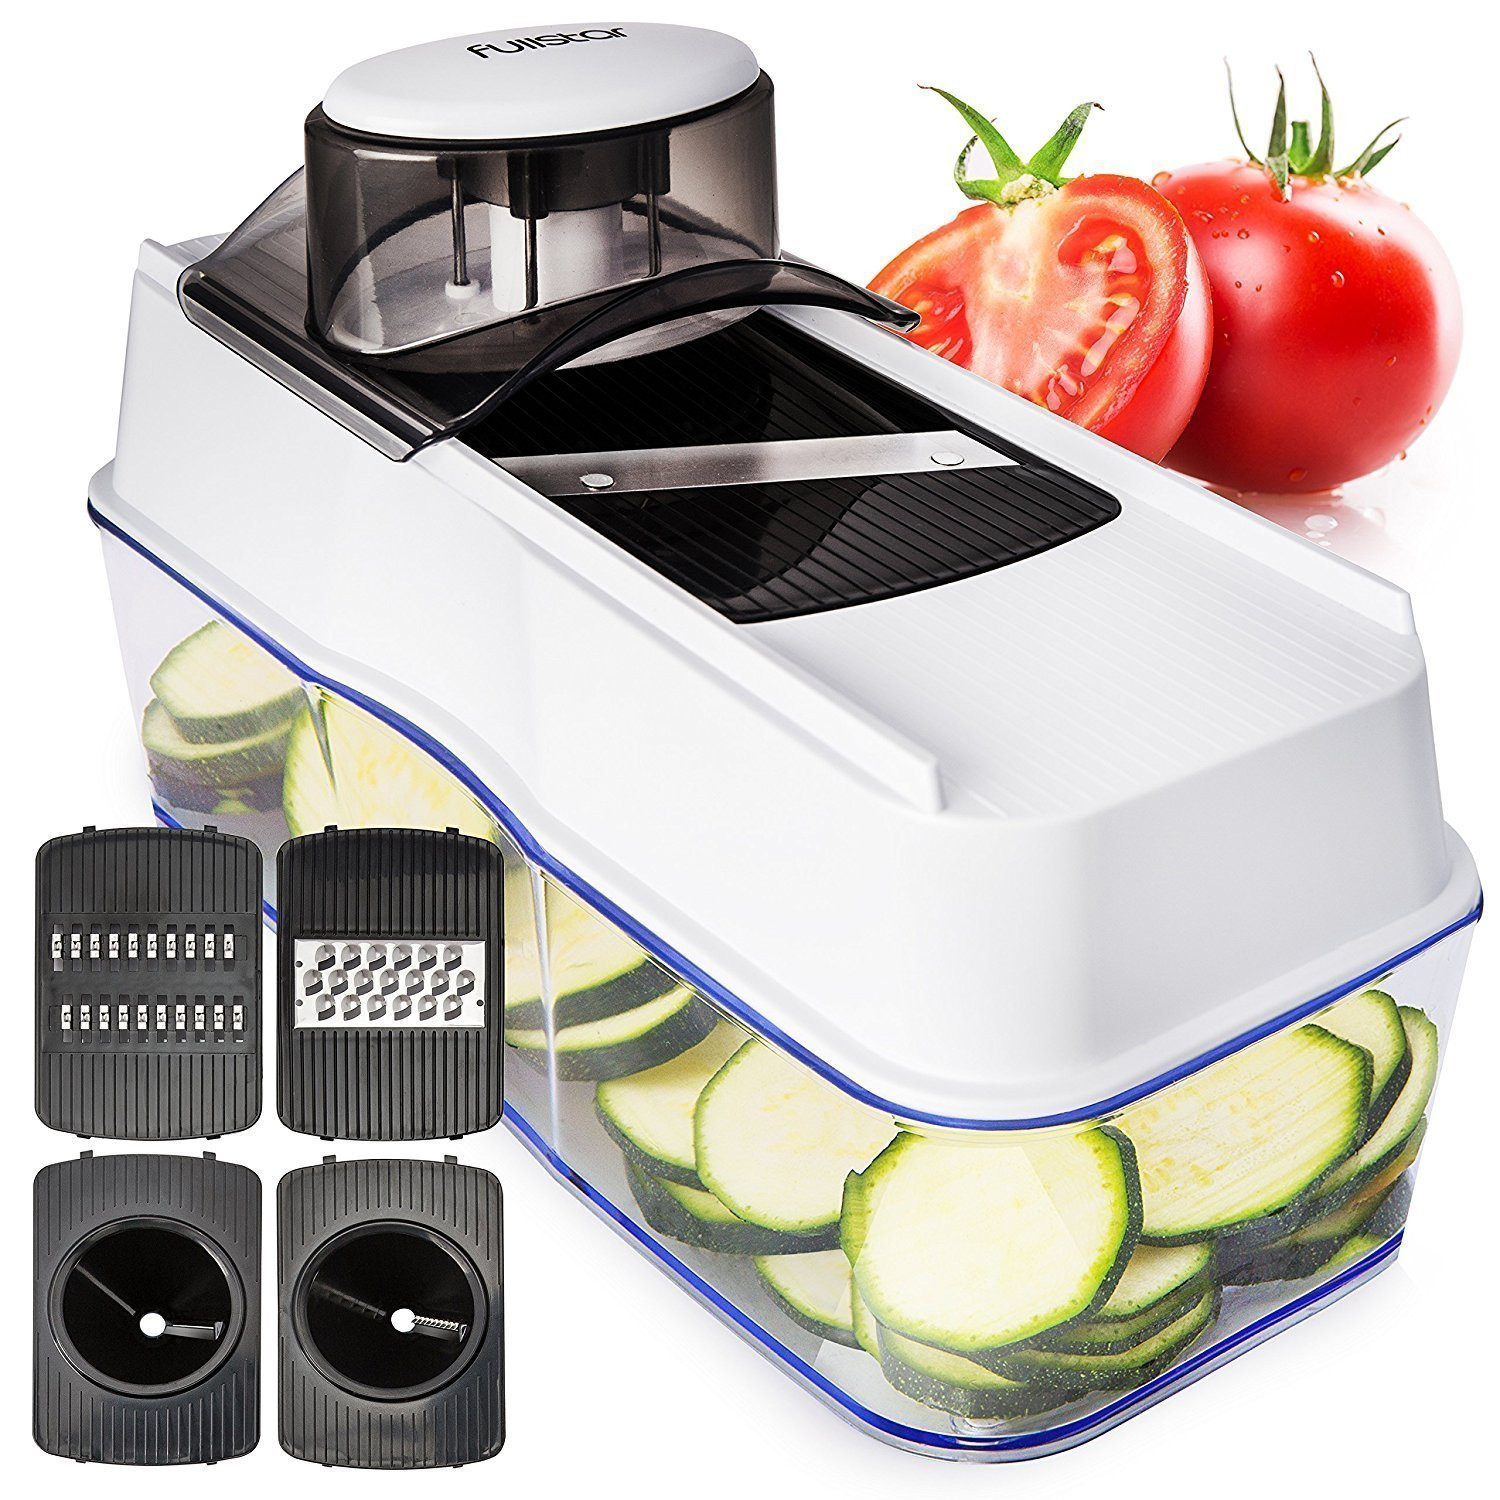 Amazon.com: Graters, Peelers & Slicers: Home & Kitchen: Peelers ...